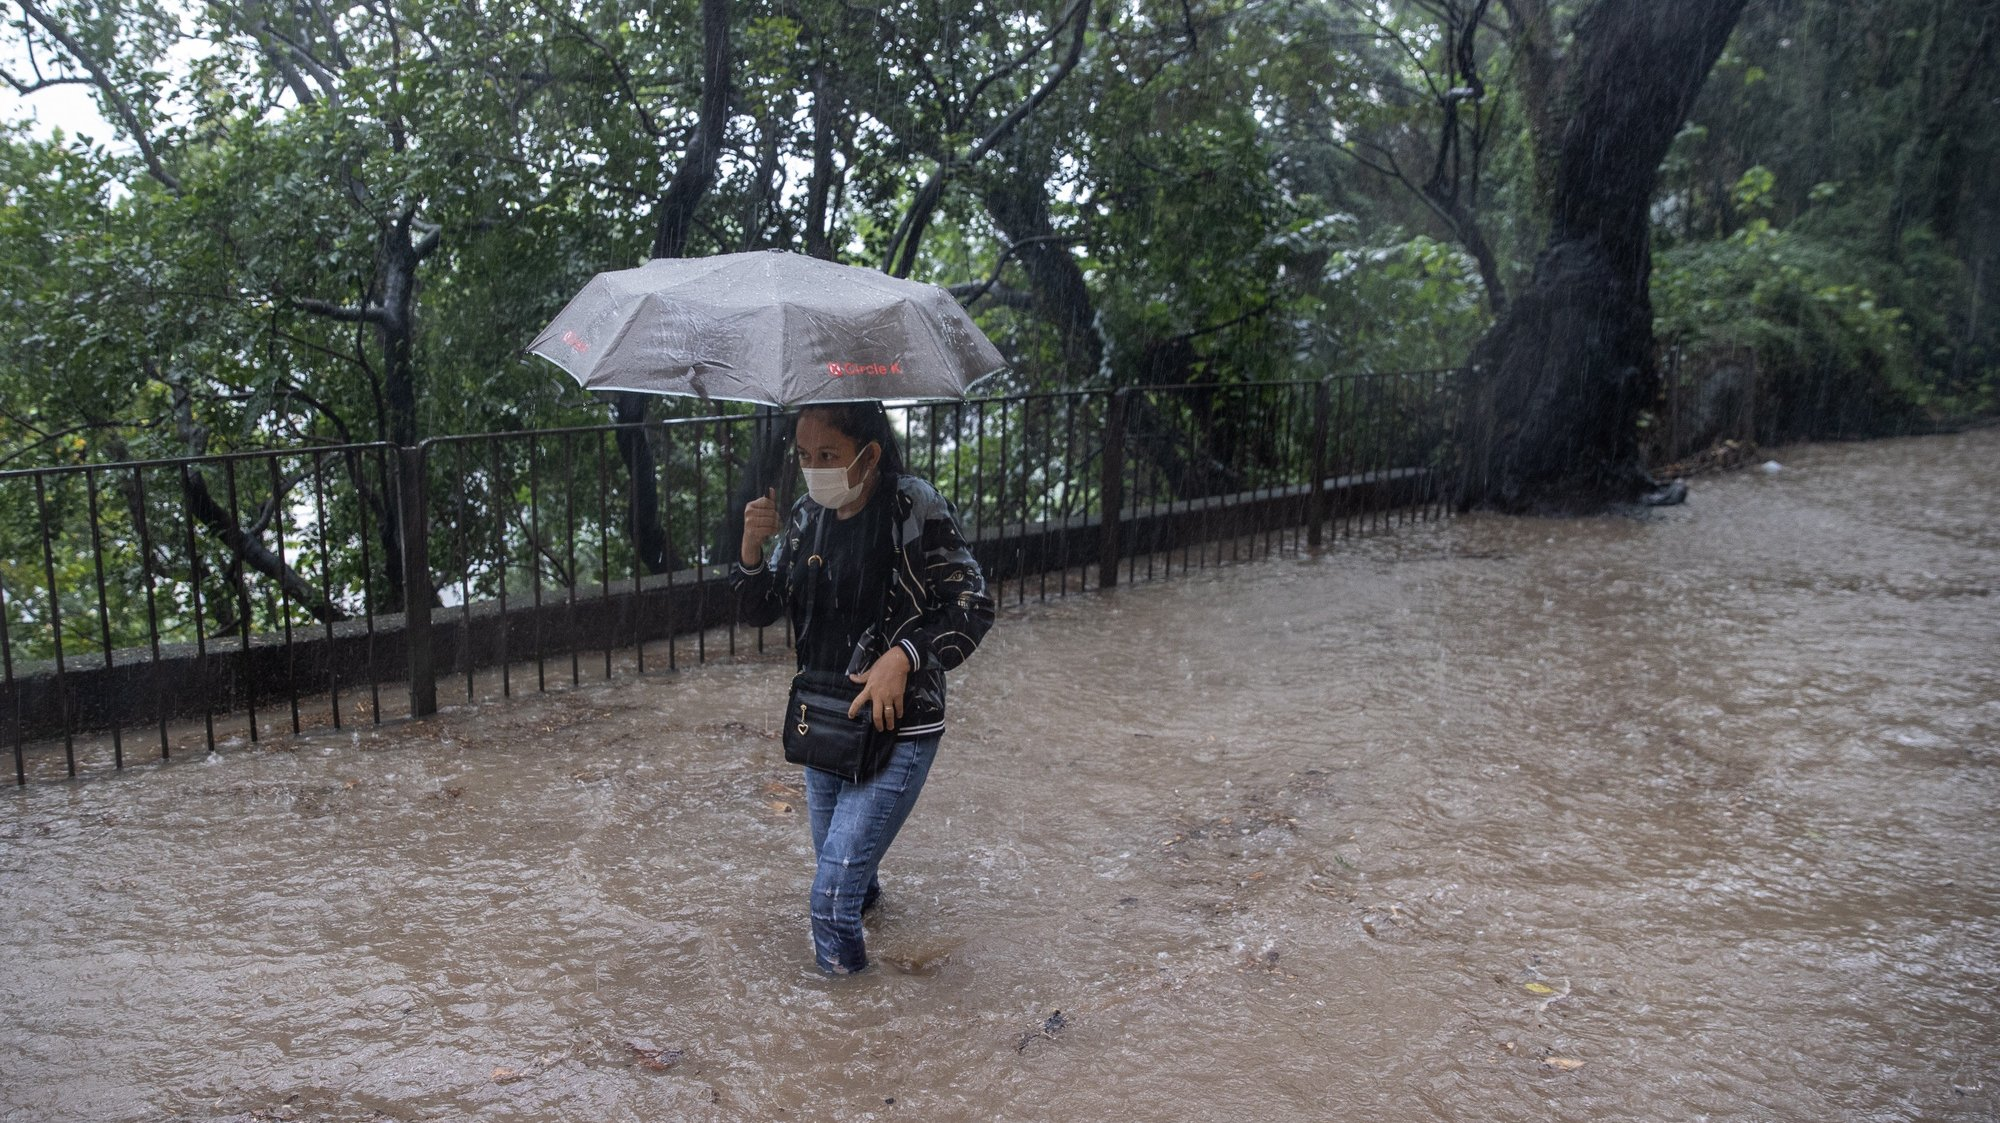 epa09512550 A woman makes her way in a road flooded by rain brought by tropical storm Lionrock in Hong Kong, China, 08 October 2021. The Hong Kong Observatory briefly upgraded its rainstorm warning to black, the highest level, amid torrential downpours brought by tropical storm Lionrock this morning.  EPA/JEROME FAVRE